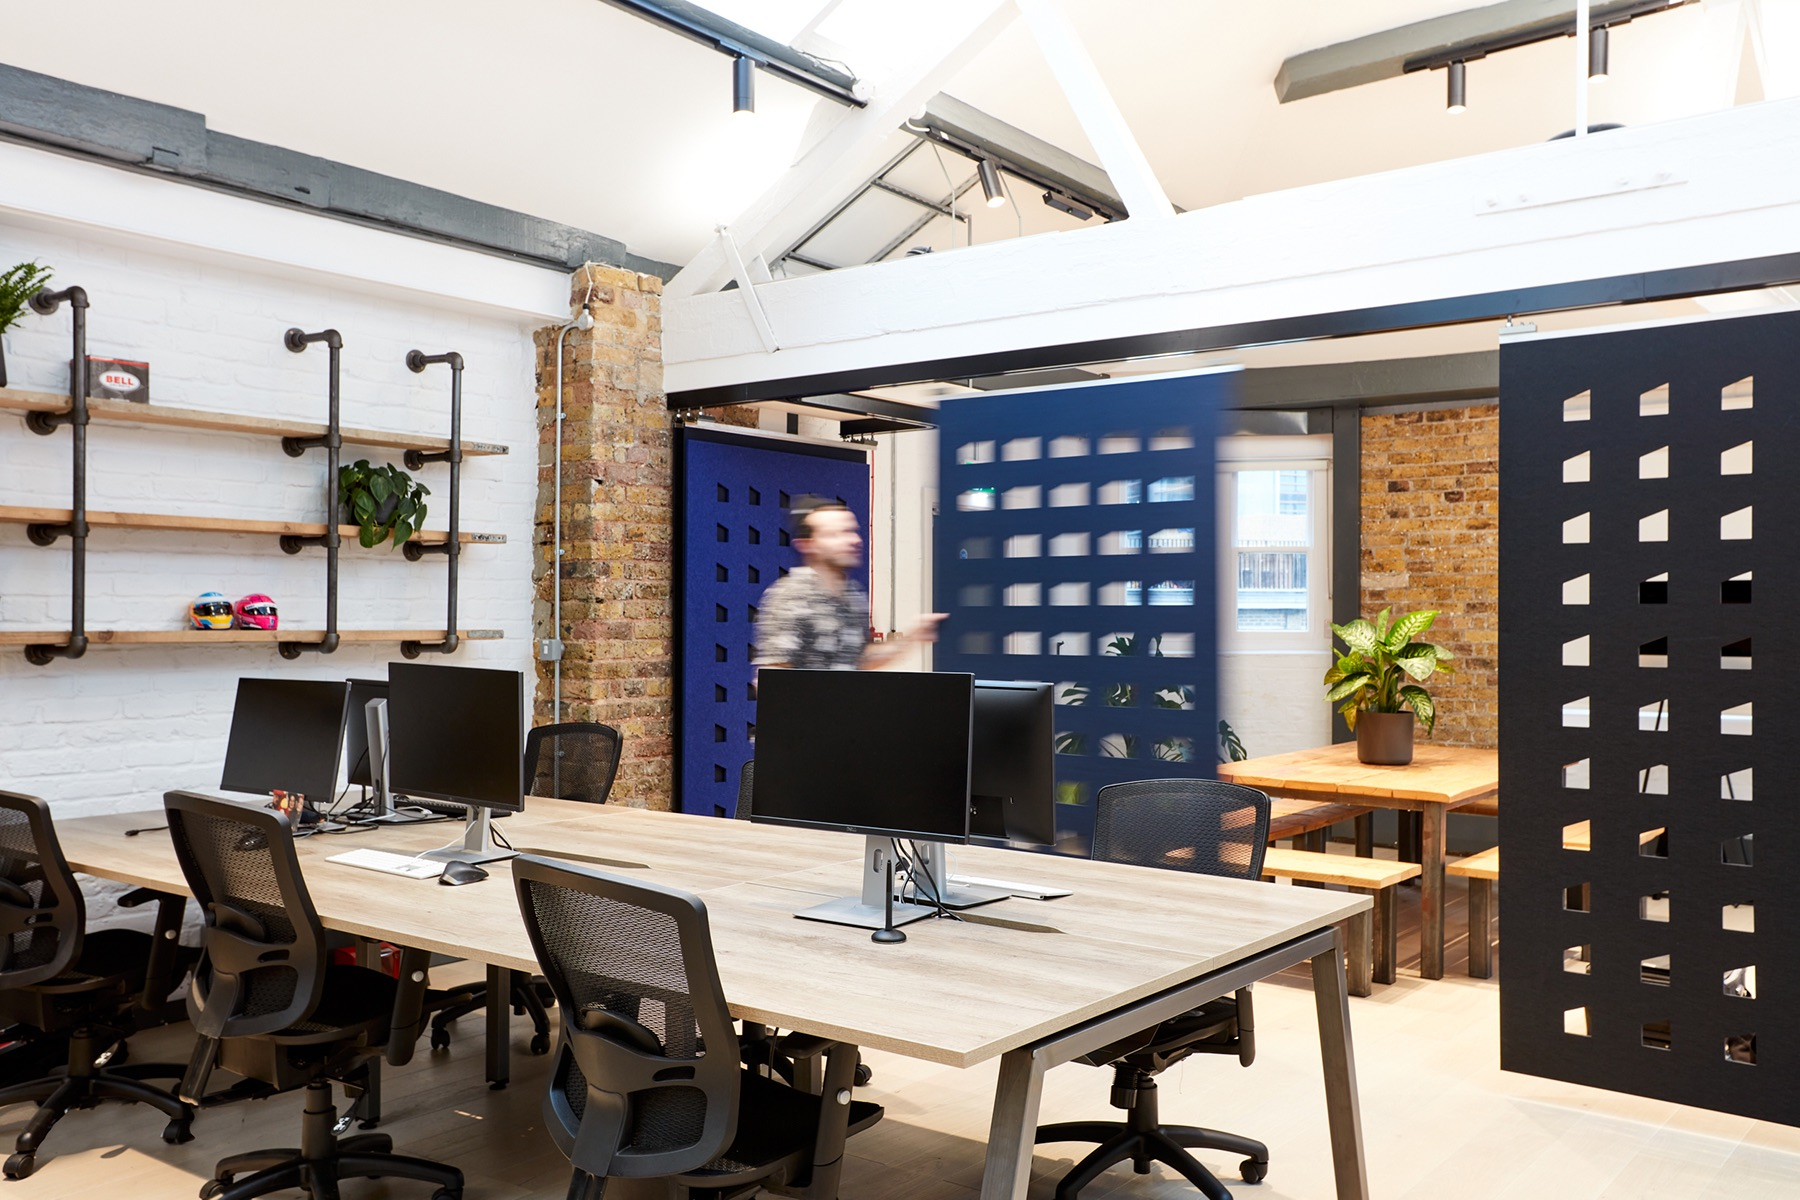 hutch-london-office-expansion-14